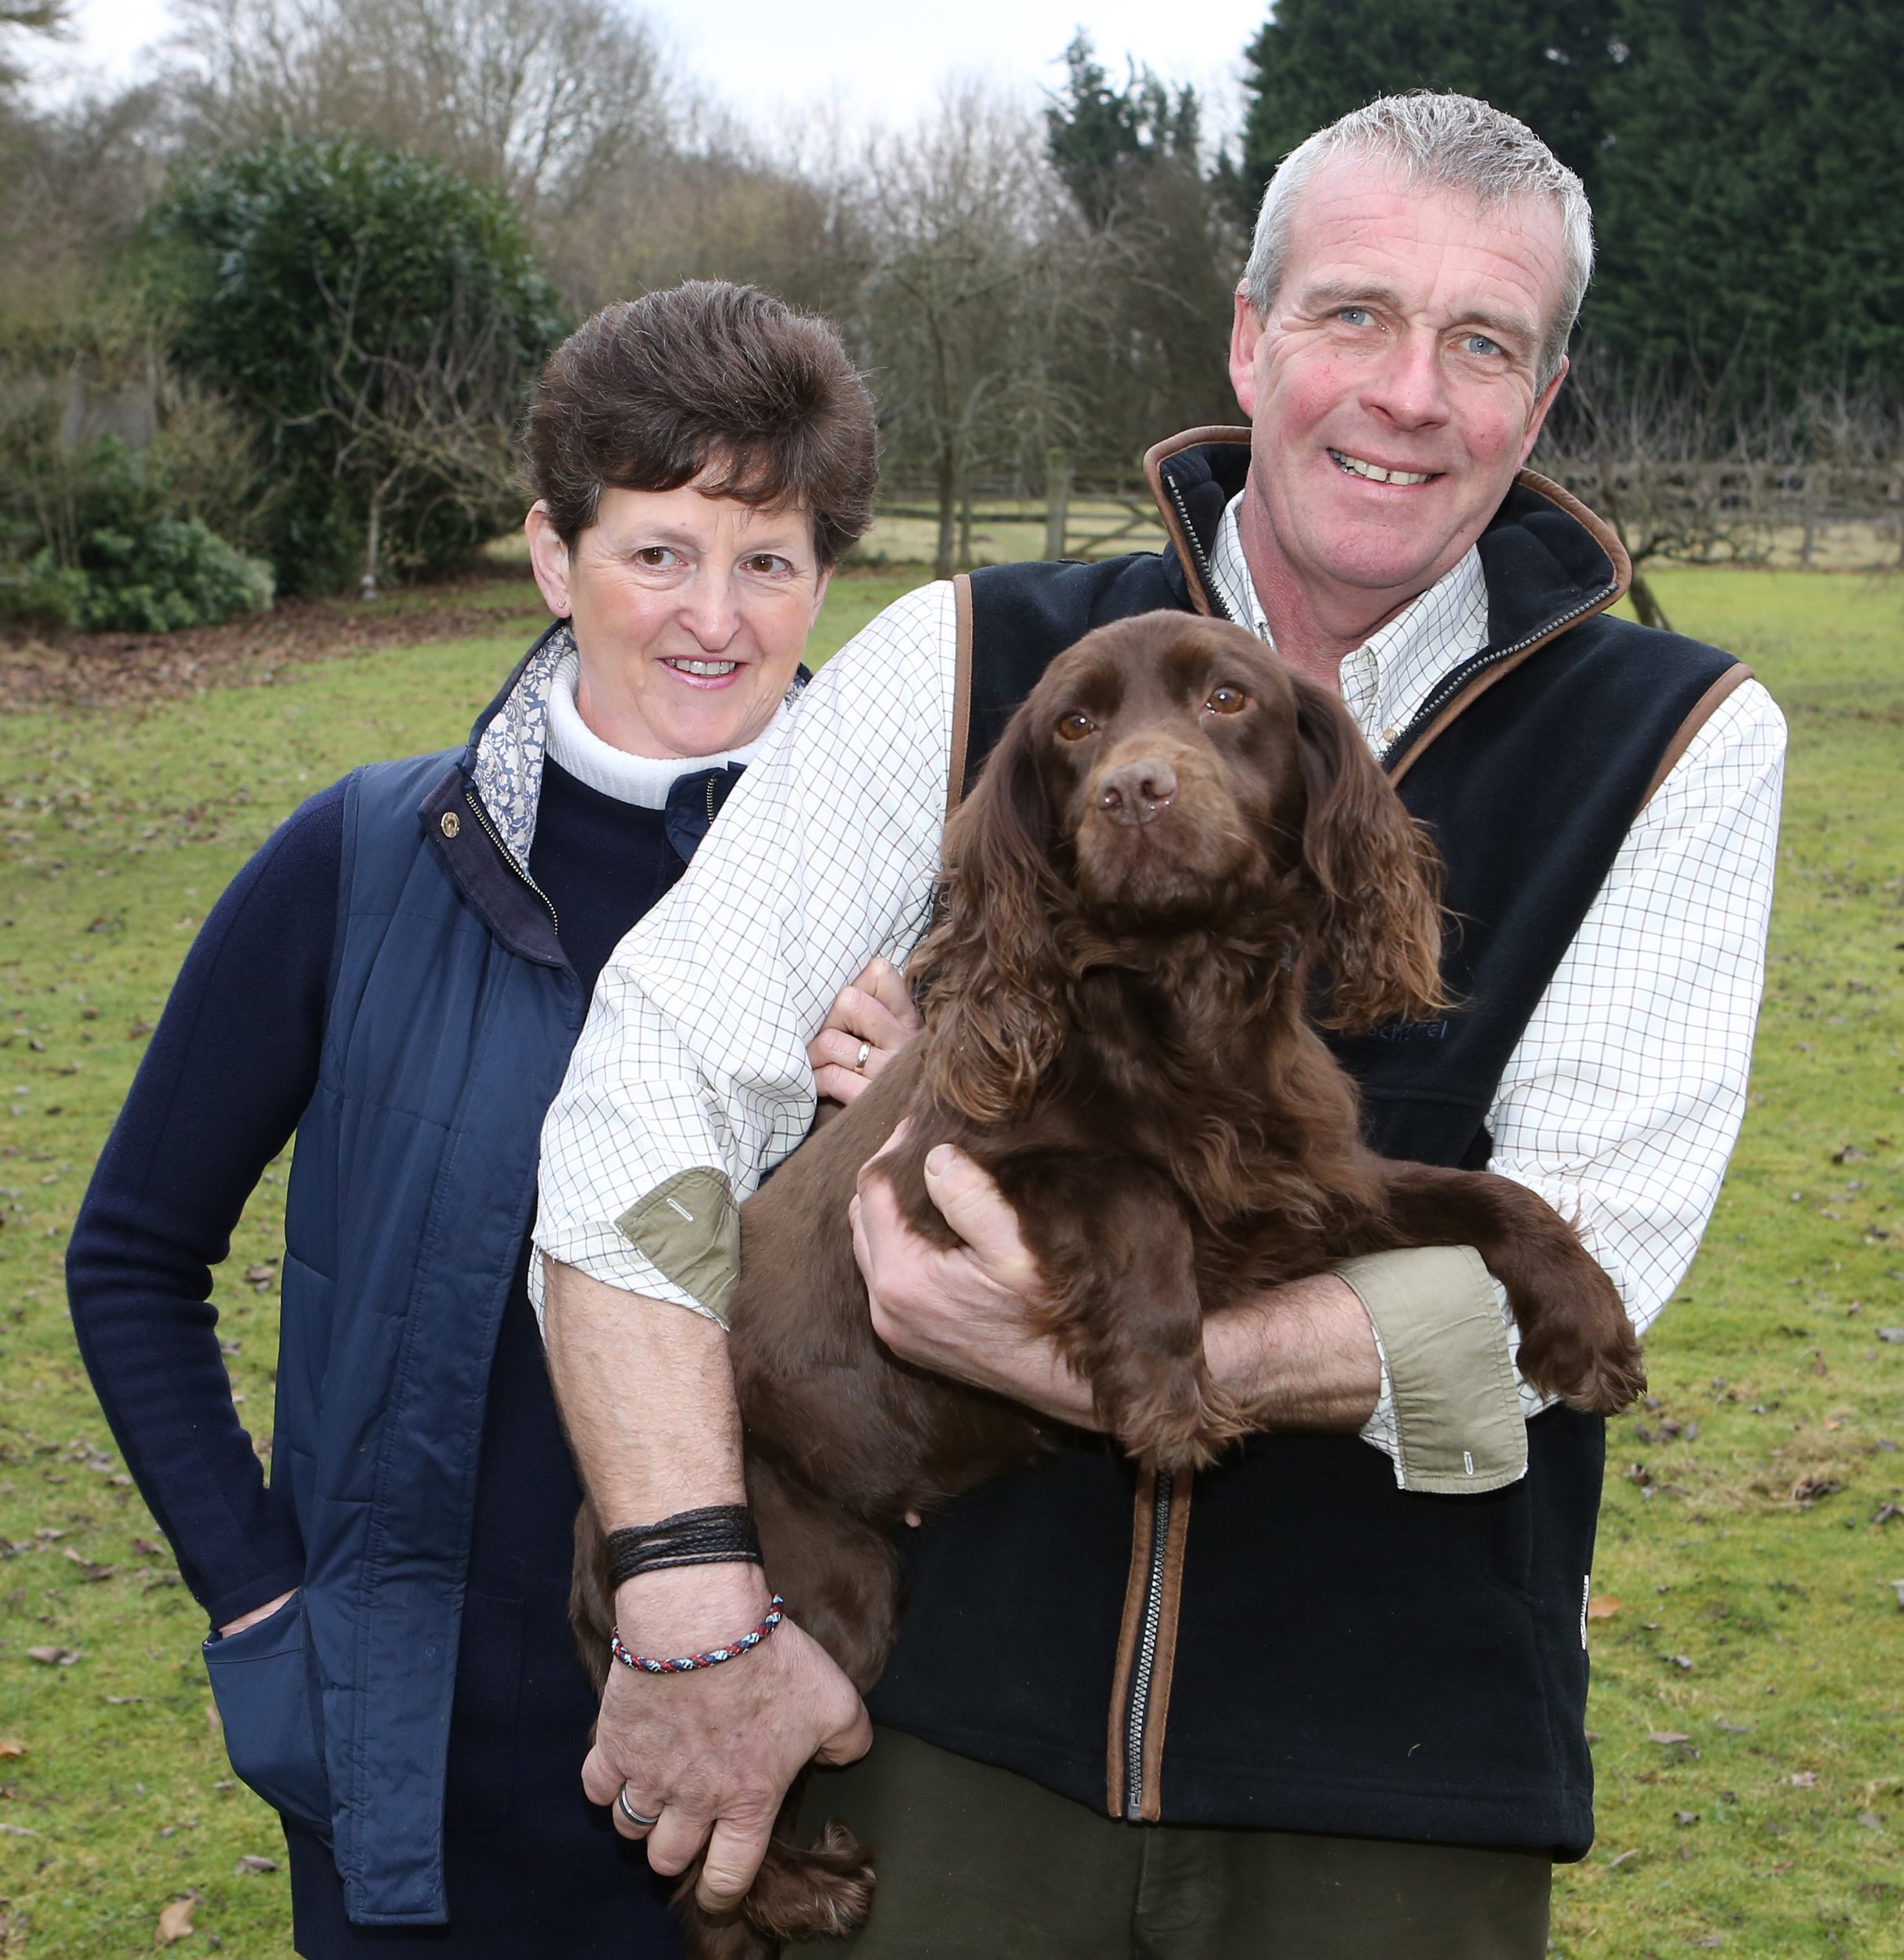 PIC SHOWS; Tina And Graham Denning at there home in Staplehurst Kent,with there rescued dog Islay who was kidnapped and found 2 weeks later at a traveller site in Kent by Kent Police Unit